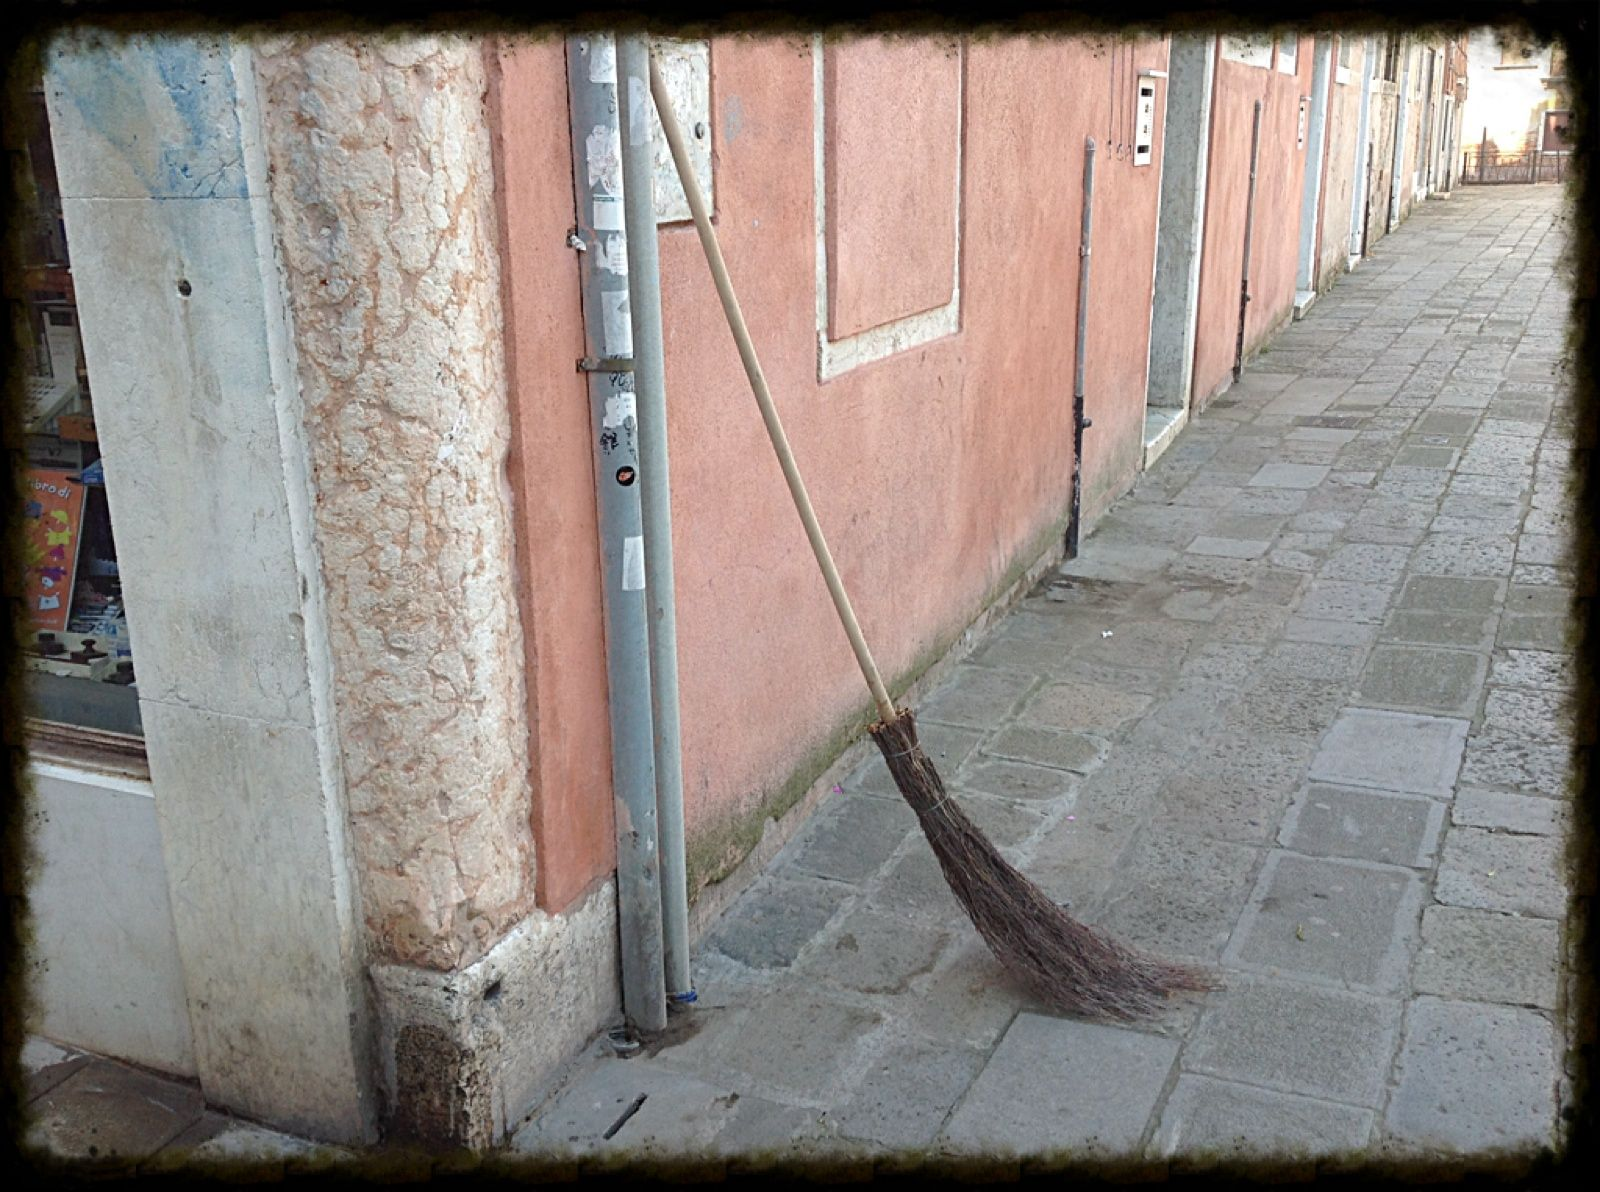 Love the old style of broom used in Venice for sweeping the pavements